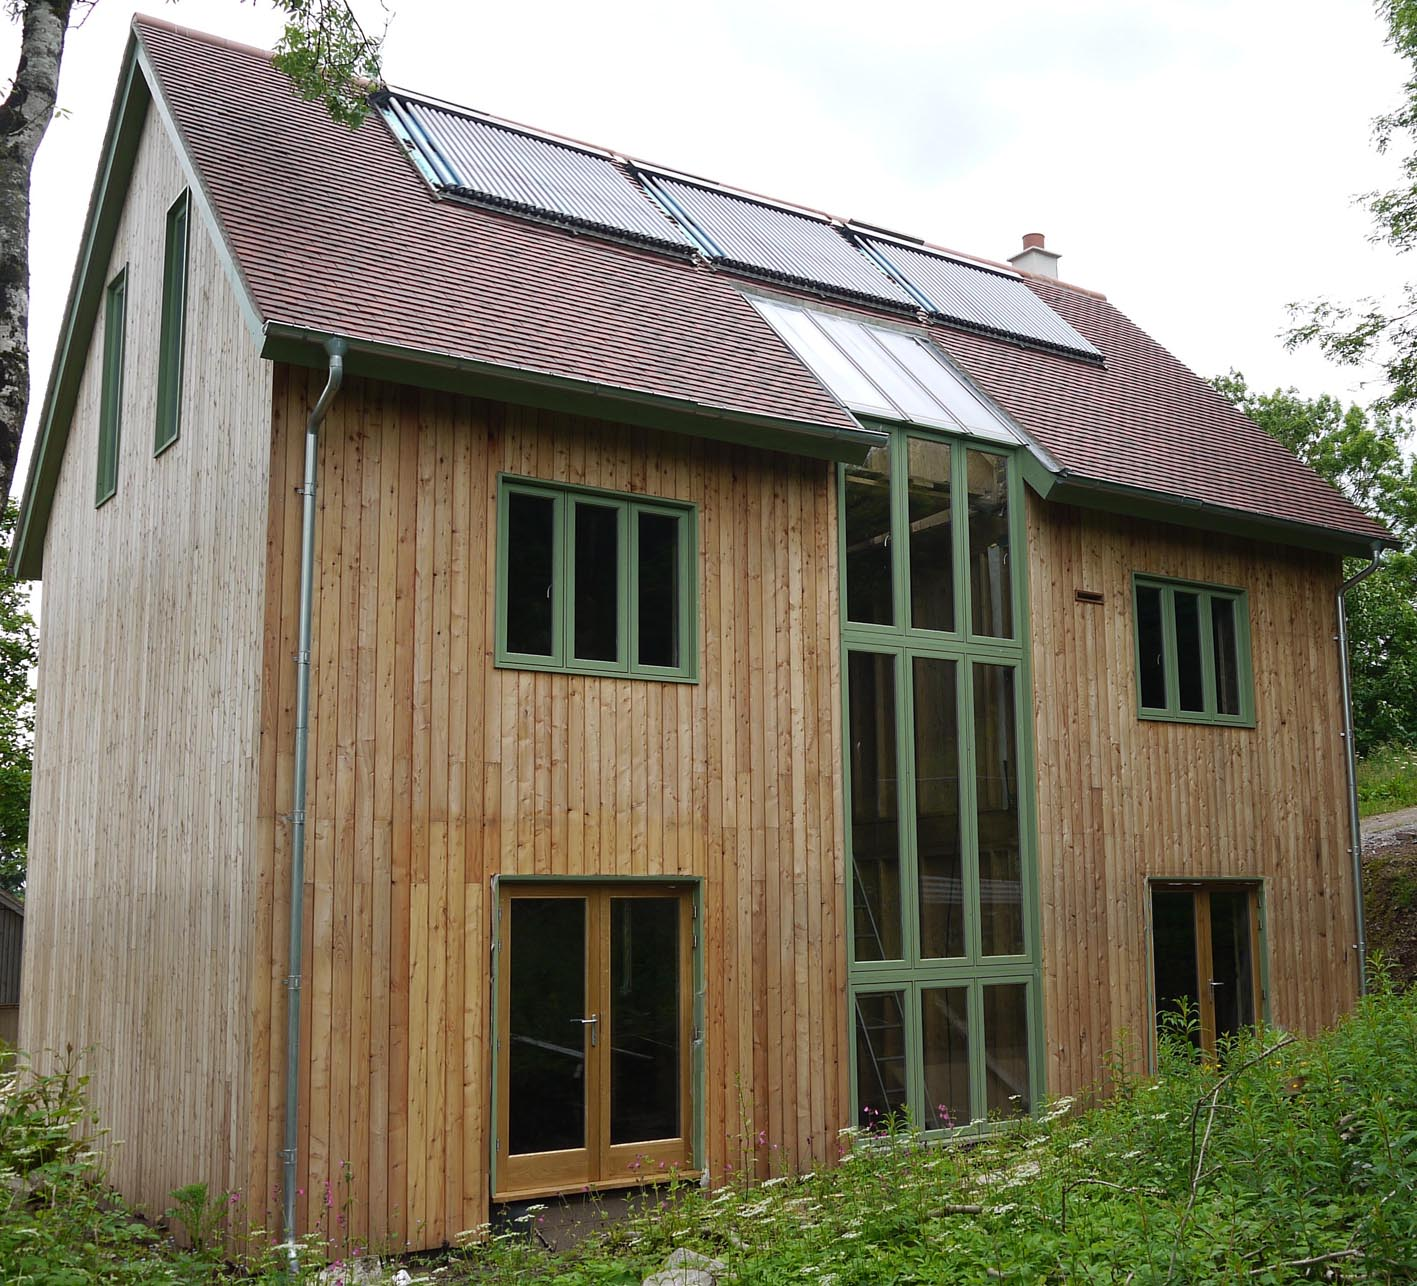 Self build shepton mallet mjw architects for Houses to build